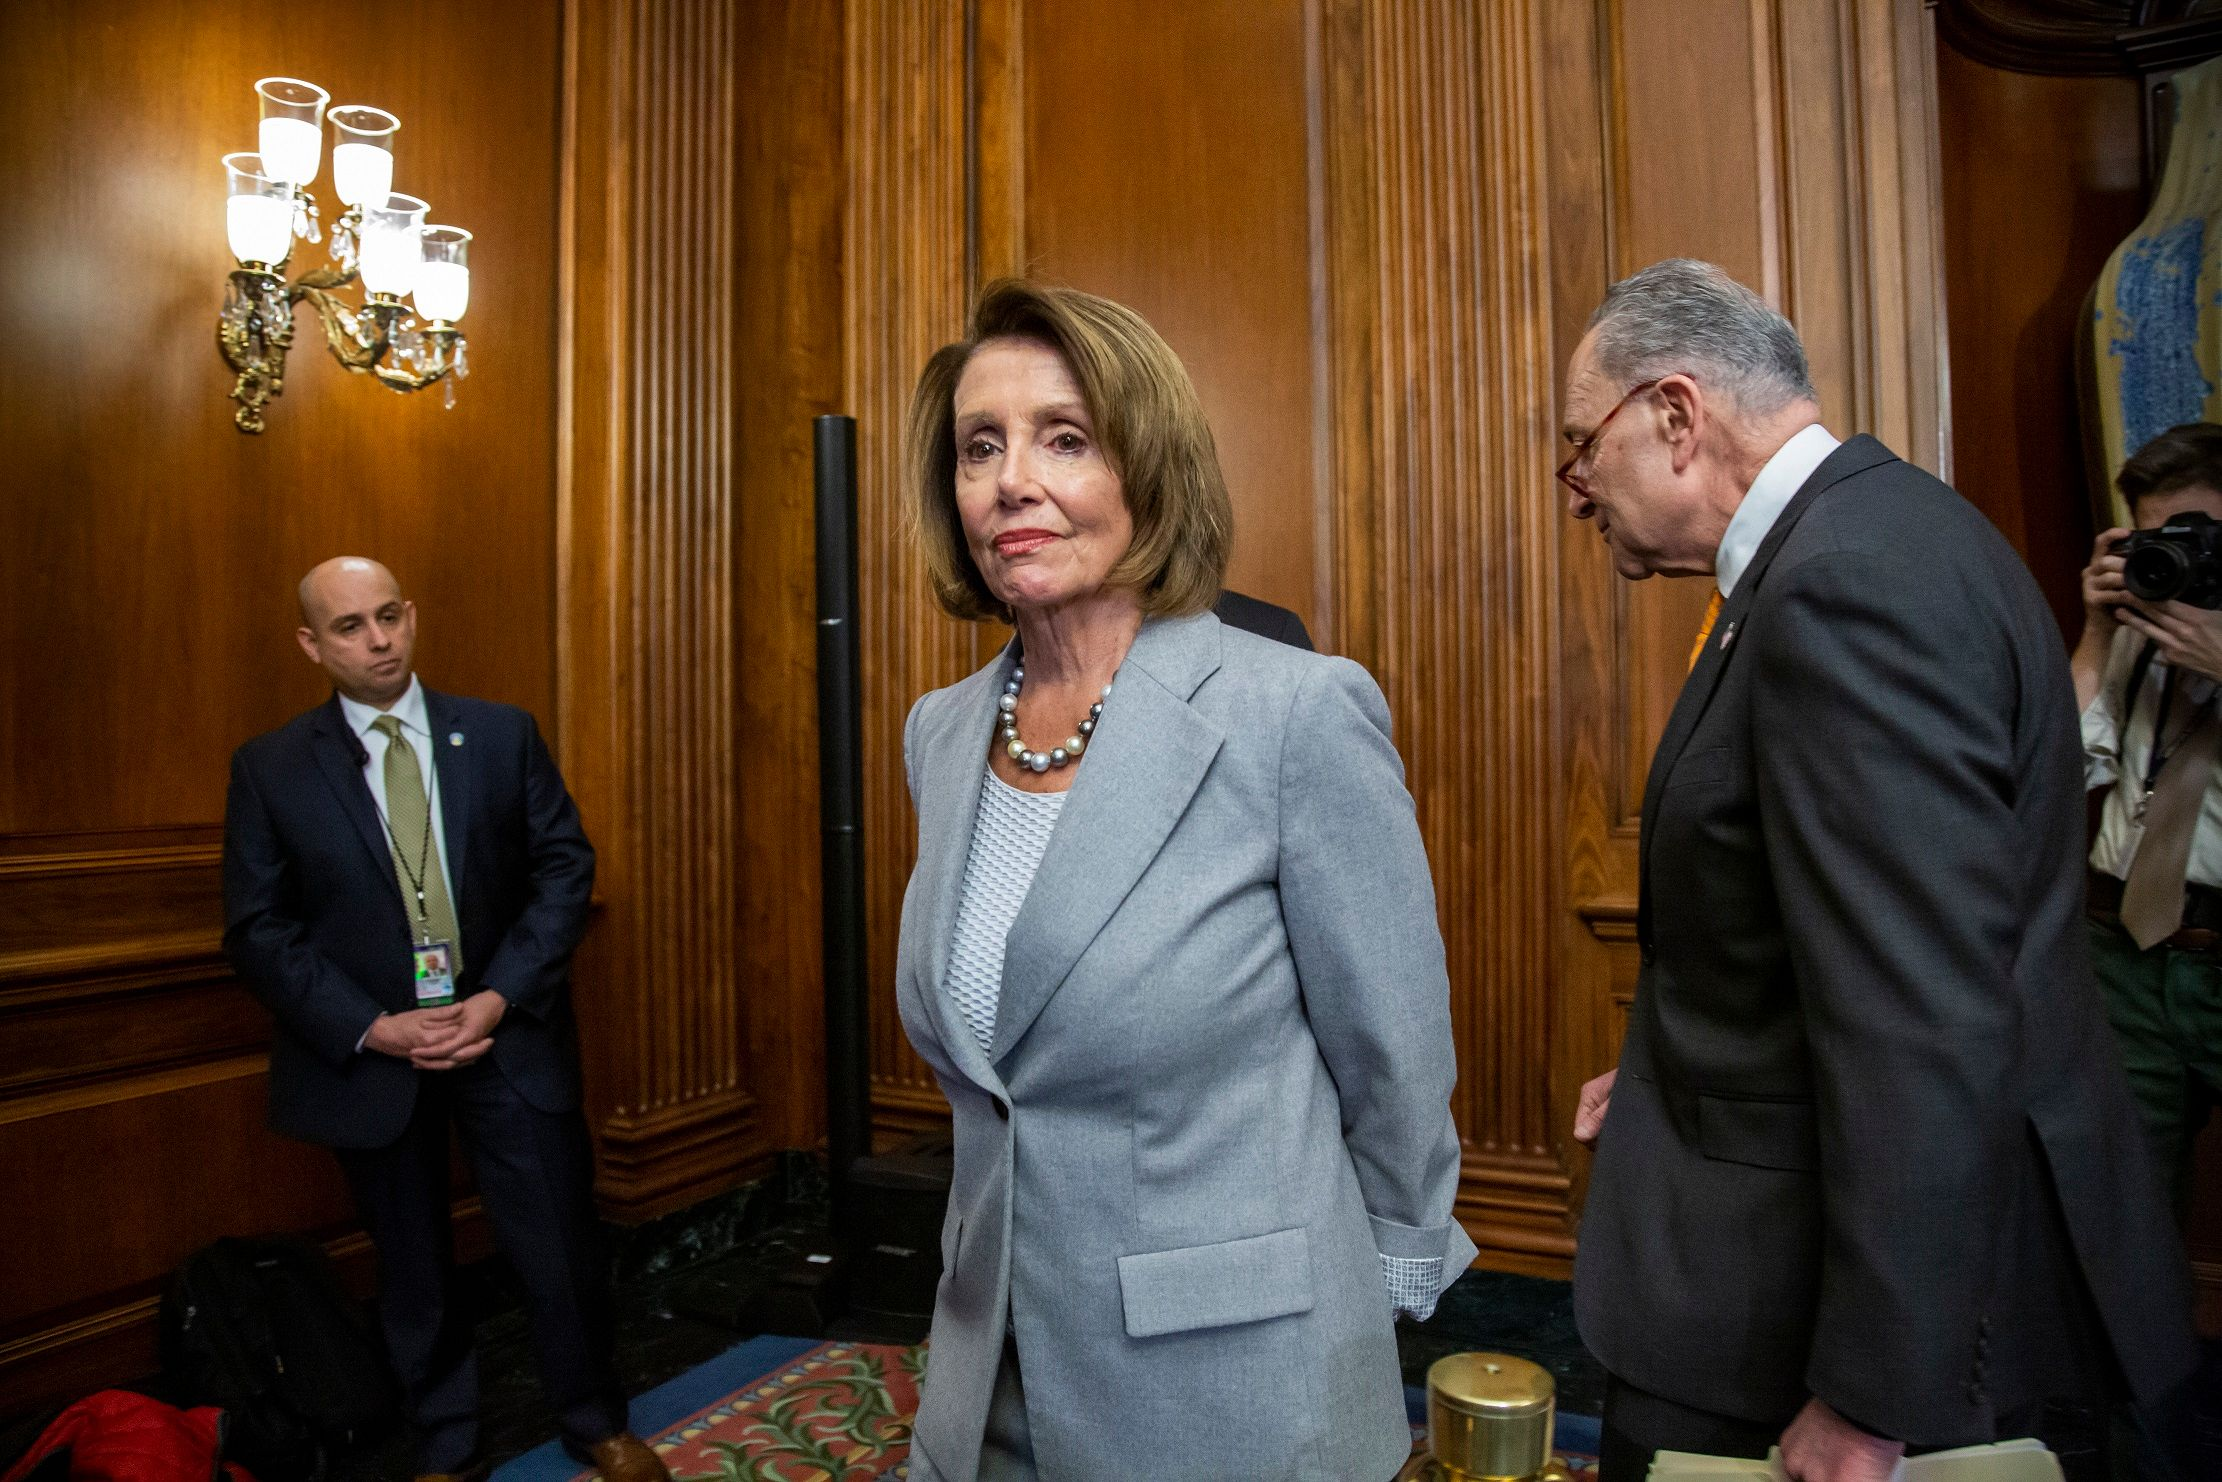 Nancy pelosi tits